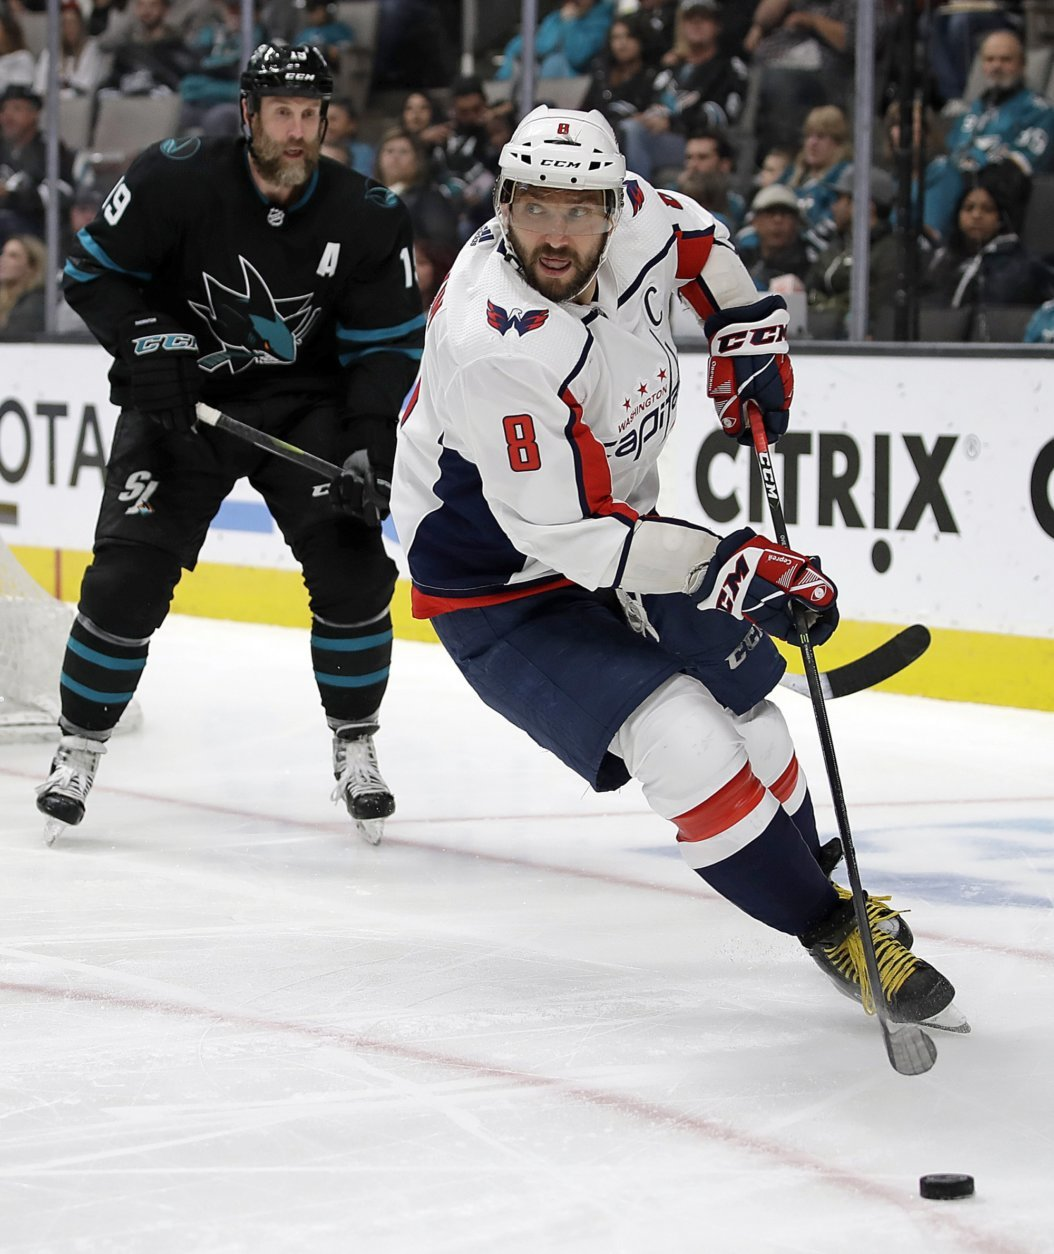 Washington Capitals' Alex Ovechkin (8) moves the puck past San Jose Sharks' Joe Thornton, left, during the second period of an NHL hockey game Thursday, Feb. 14, 2019, in San Jose, Calif. (AP Photo/Ben Margot)